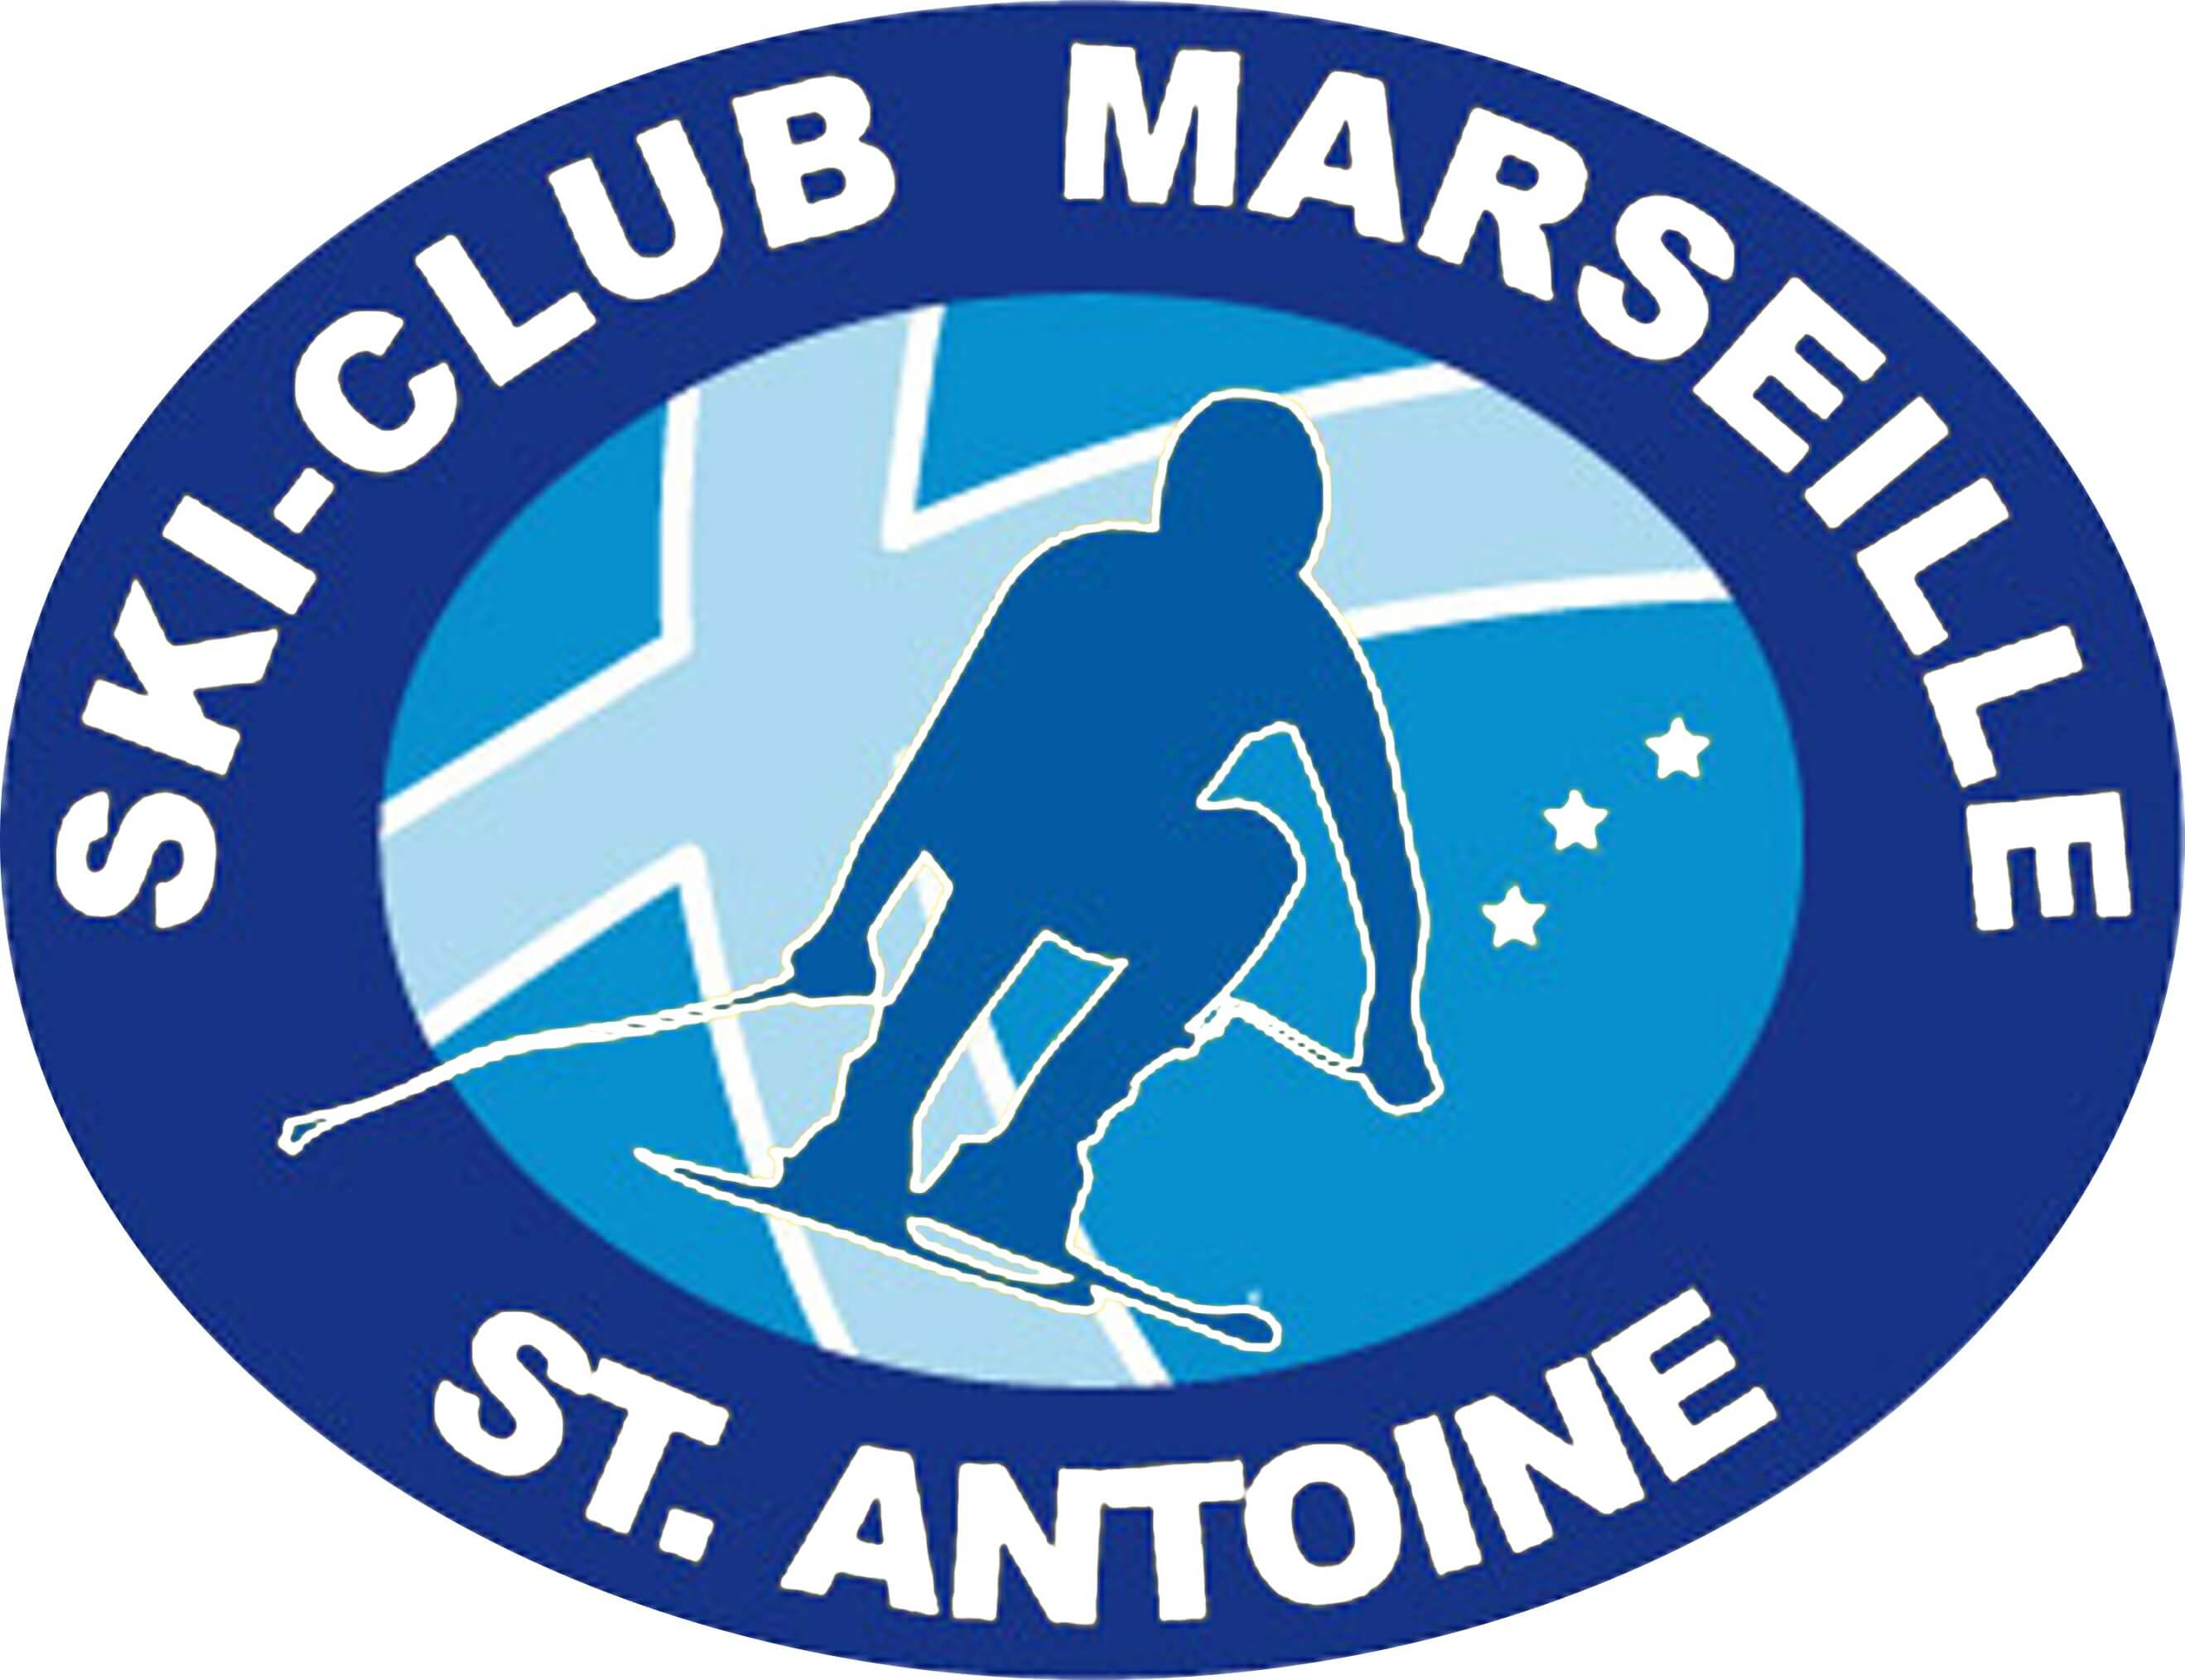 Ski Club Marseille Saint-Antoine